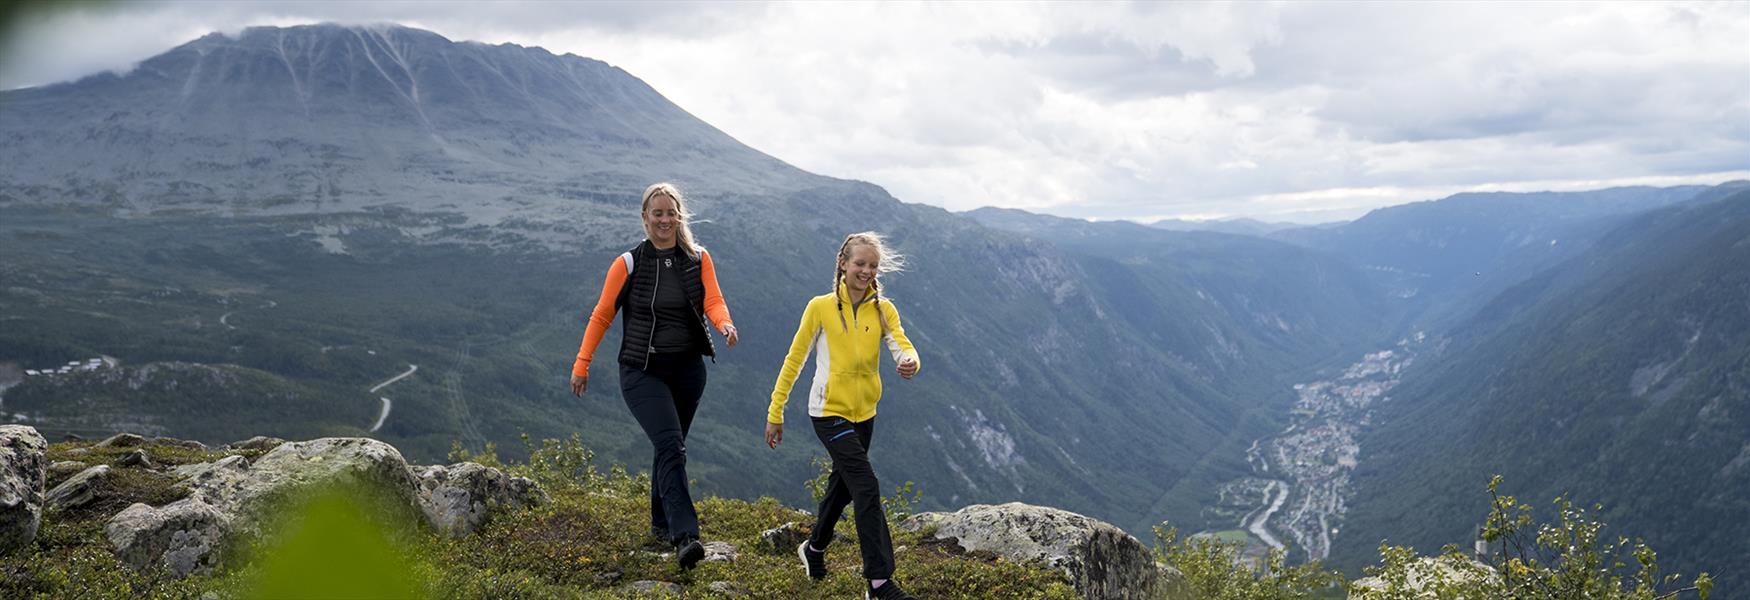 Enjoy hiking in the Mountains of Telemark